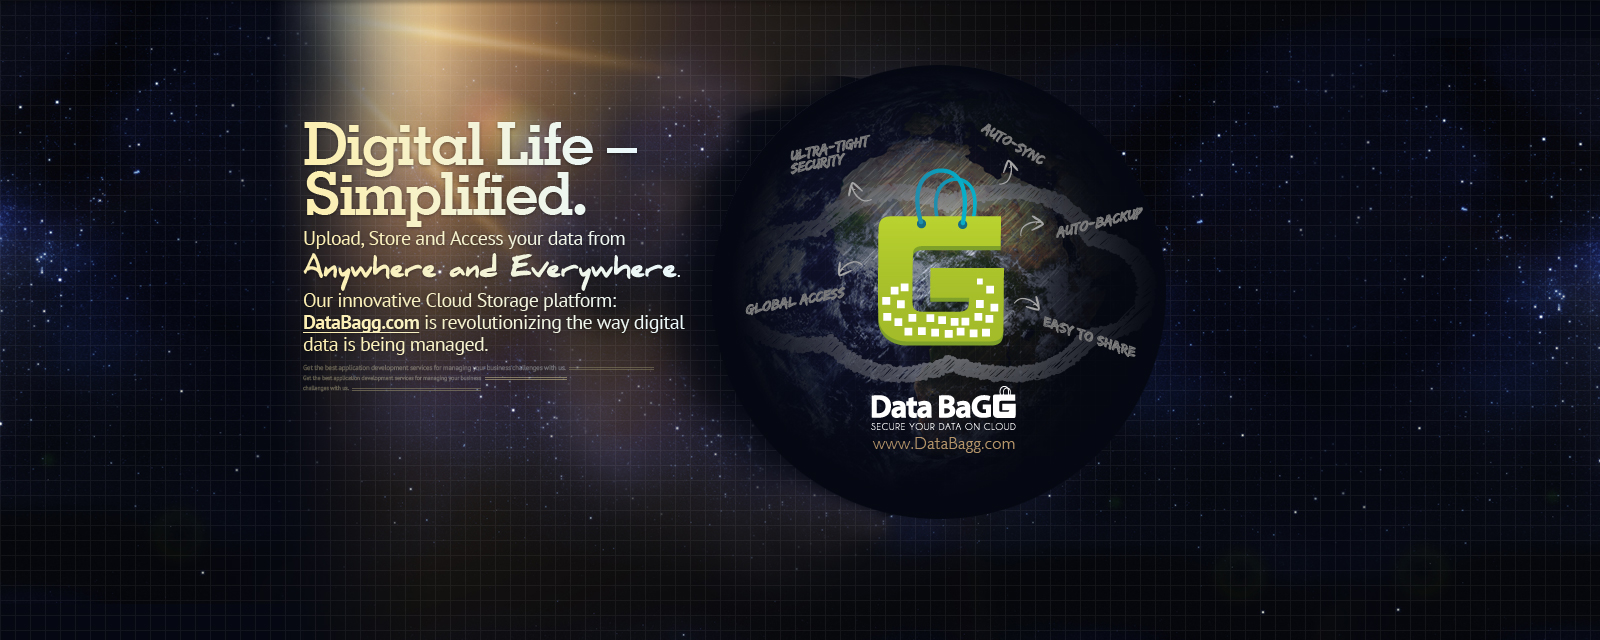 Online Cloud Storage Solution - Databagg